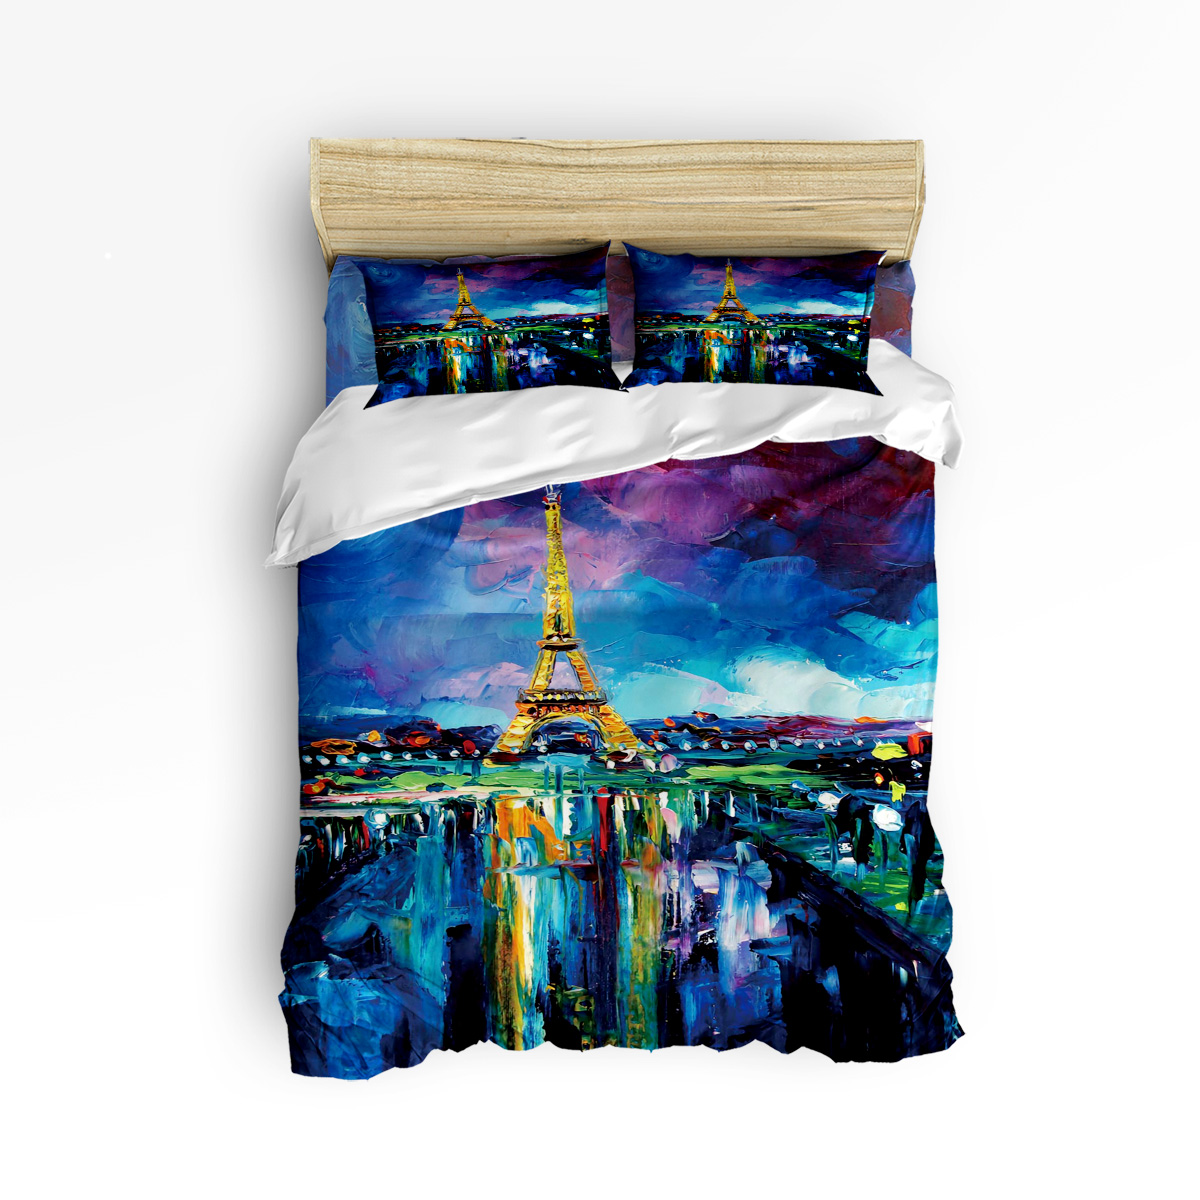 Arts Oil Painting Paris Tower 3 Pcs 4 Pcs Bedding Set Home Decor Duvet Cover Set Comforter Bedding Sets Adult Kids Free ShippingArts Oil Painting Paris Tower 3 Pcs 4 Pcs Bedding Set Home Decor Duvet Cover Set Comforter Bedding Sets Adult Kids Free Shipping